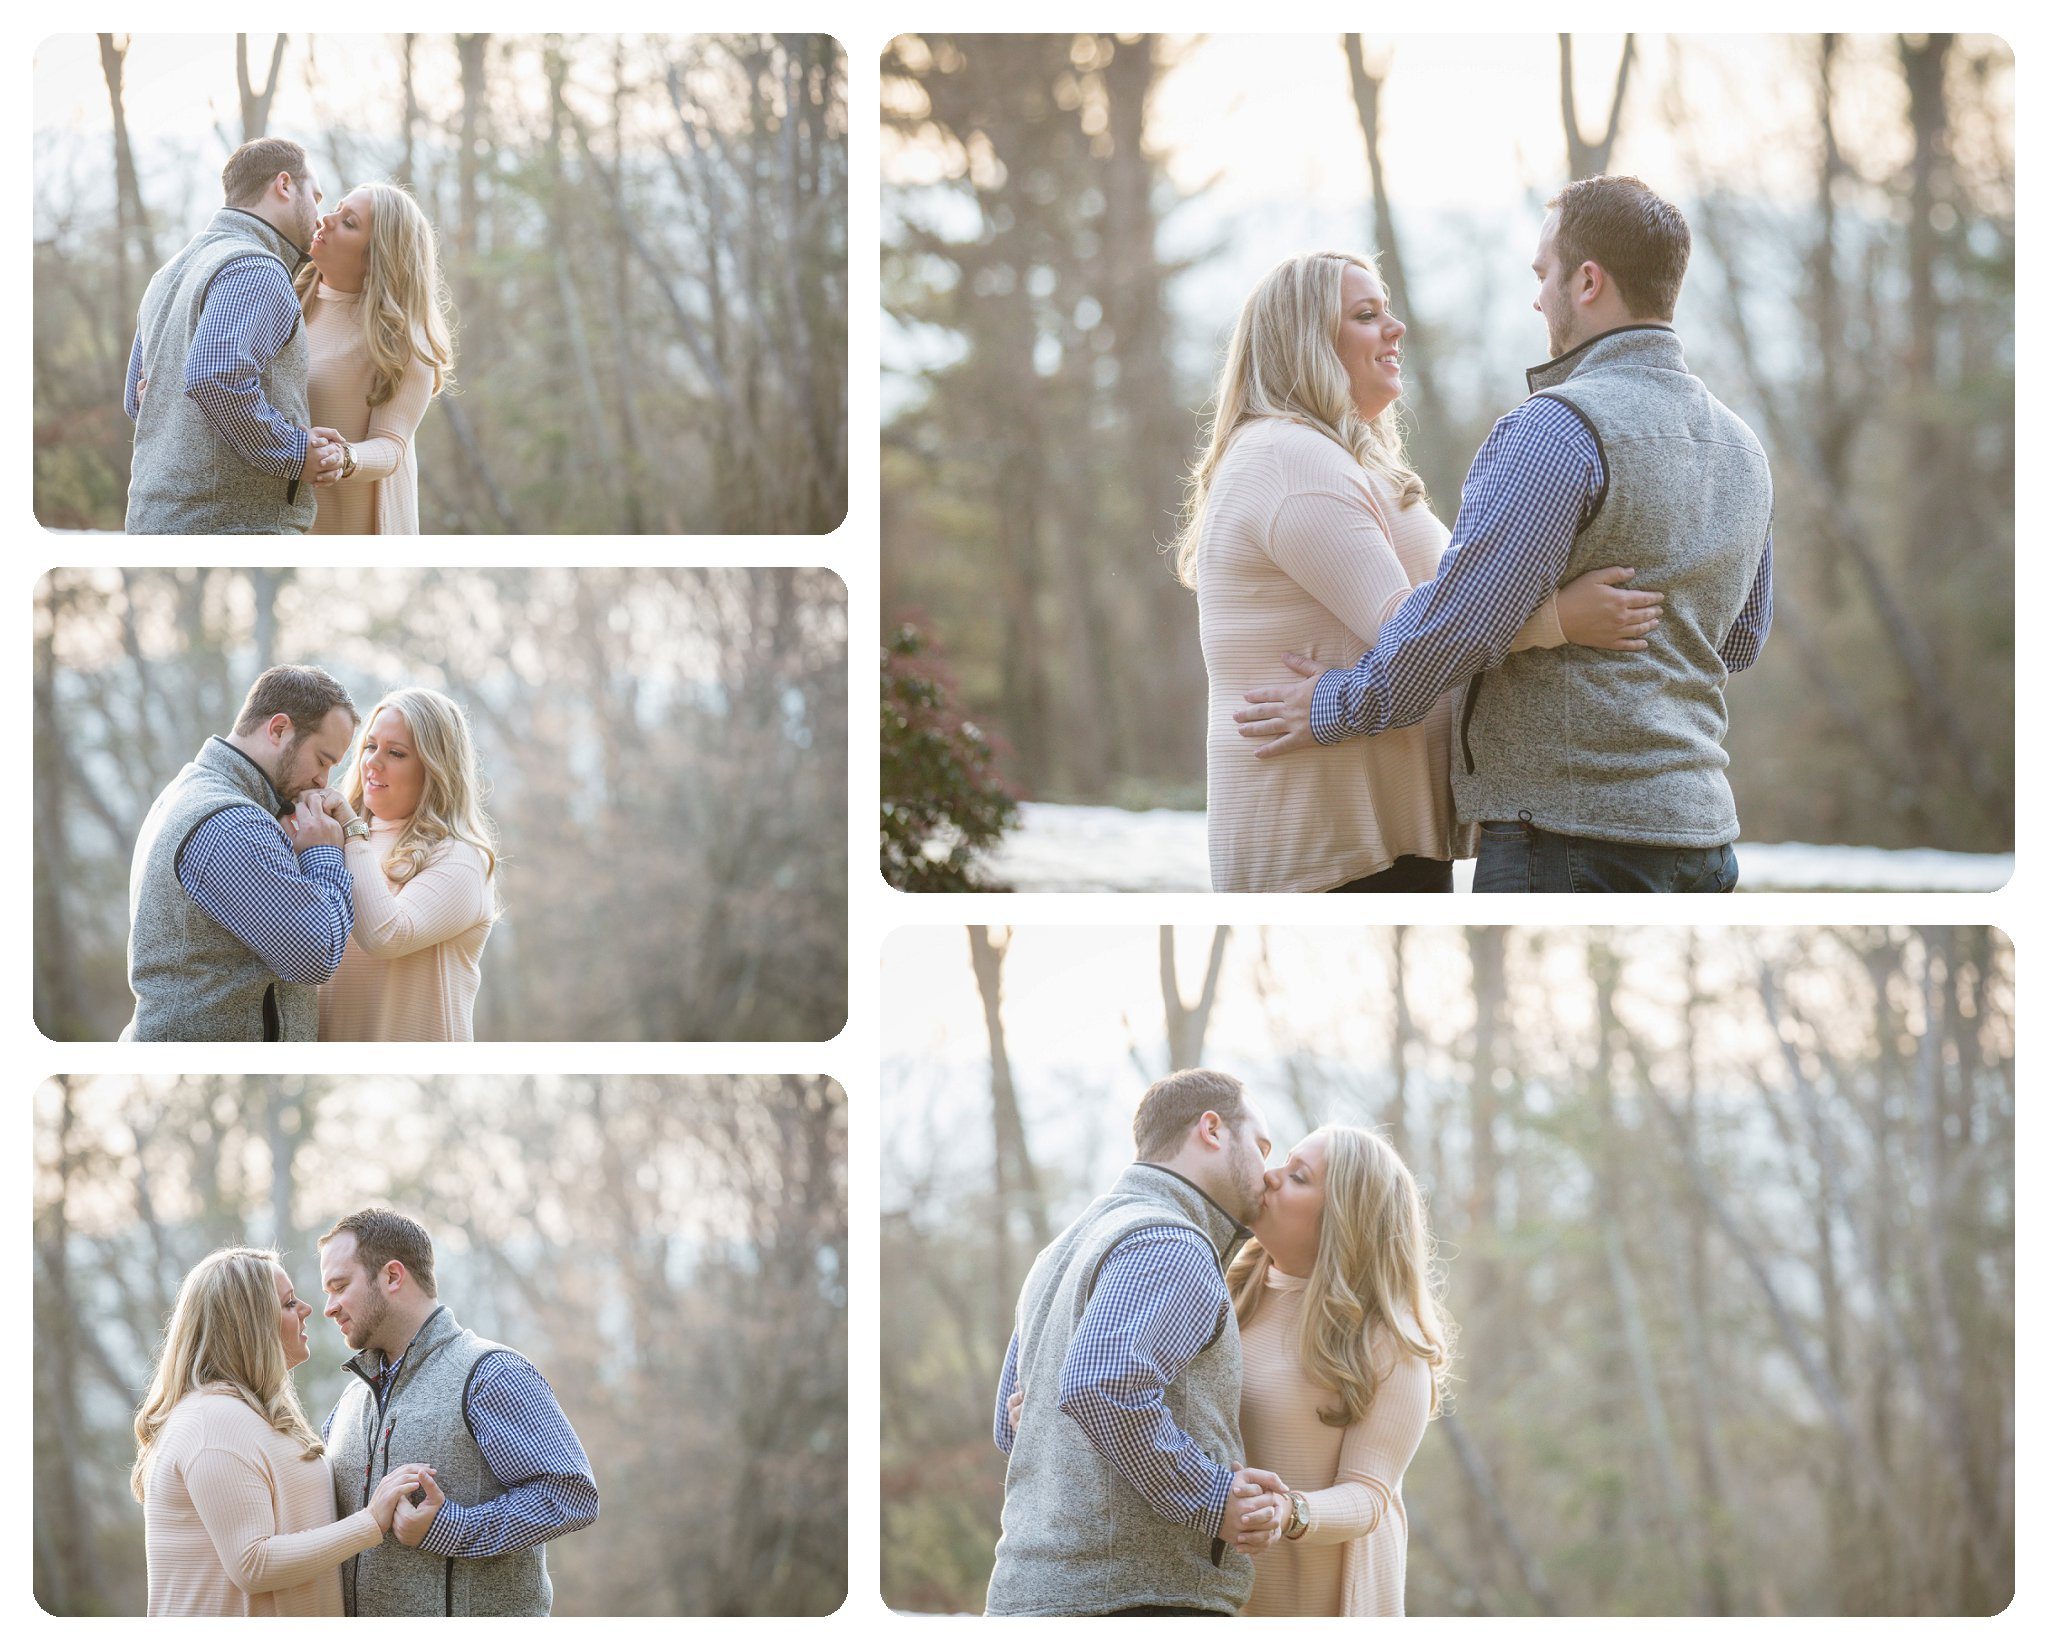 Surprise proposal at Biltmore Estate in Asheville NC on Diana Hill - 7